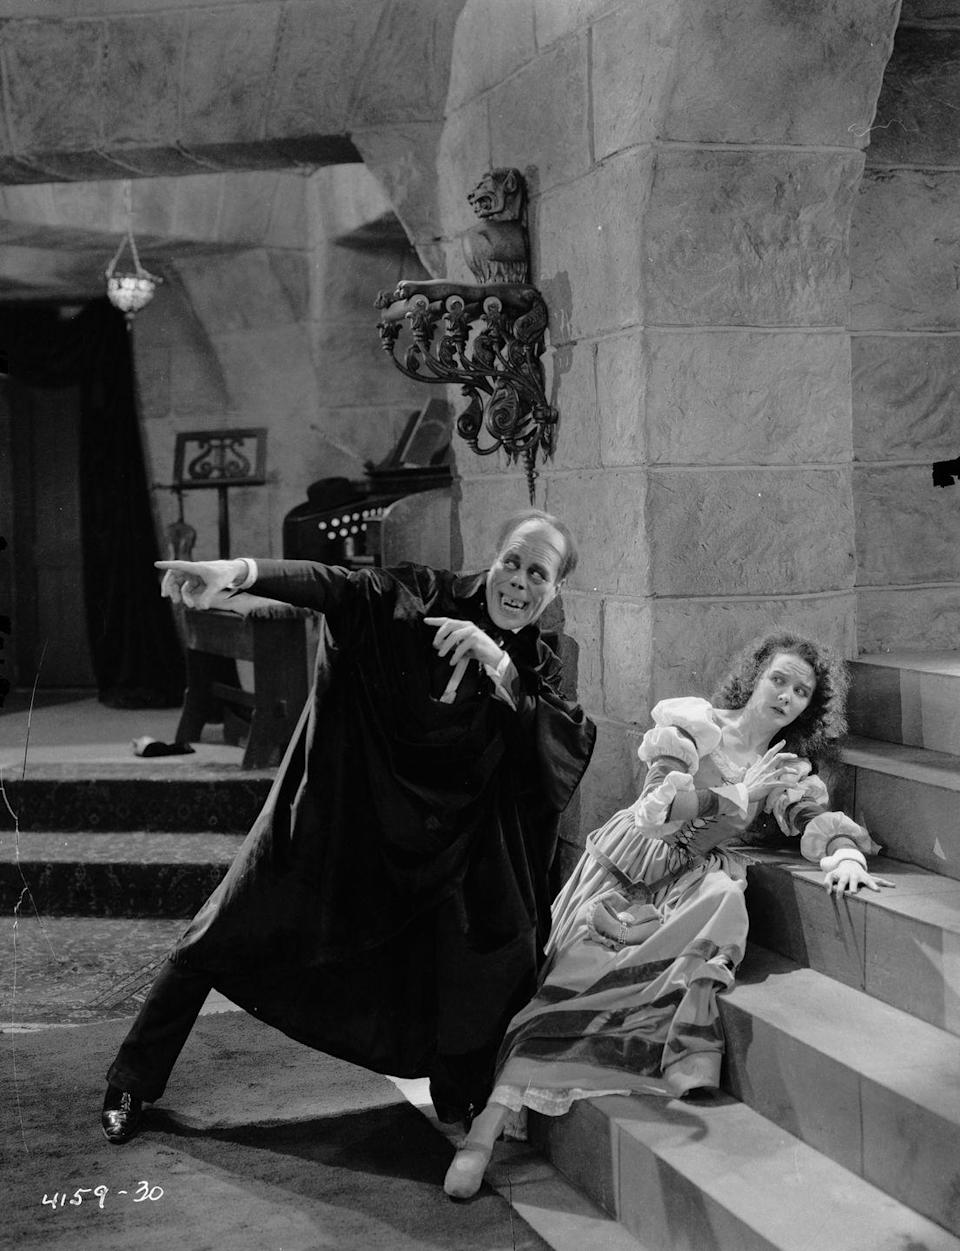 <p>An iconic version of <em>The Phantom Of The Opera</em> hit the silver screen, starring Mary Philbon as Christine Daae. Mary was the No.1 name for girls all through the 1920s – and the actress only made it more popular. That year, Betty dethroned Helen to take the No. 3 spot, while Dorothy held steady. Boys' picks were still Robert, John, and William.</p>